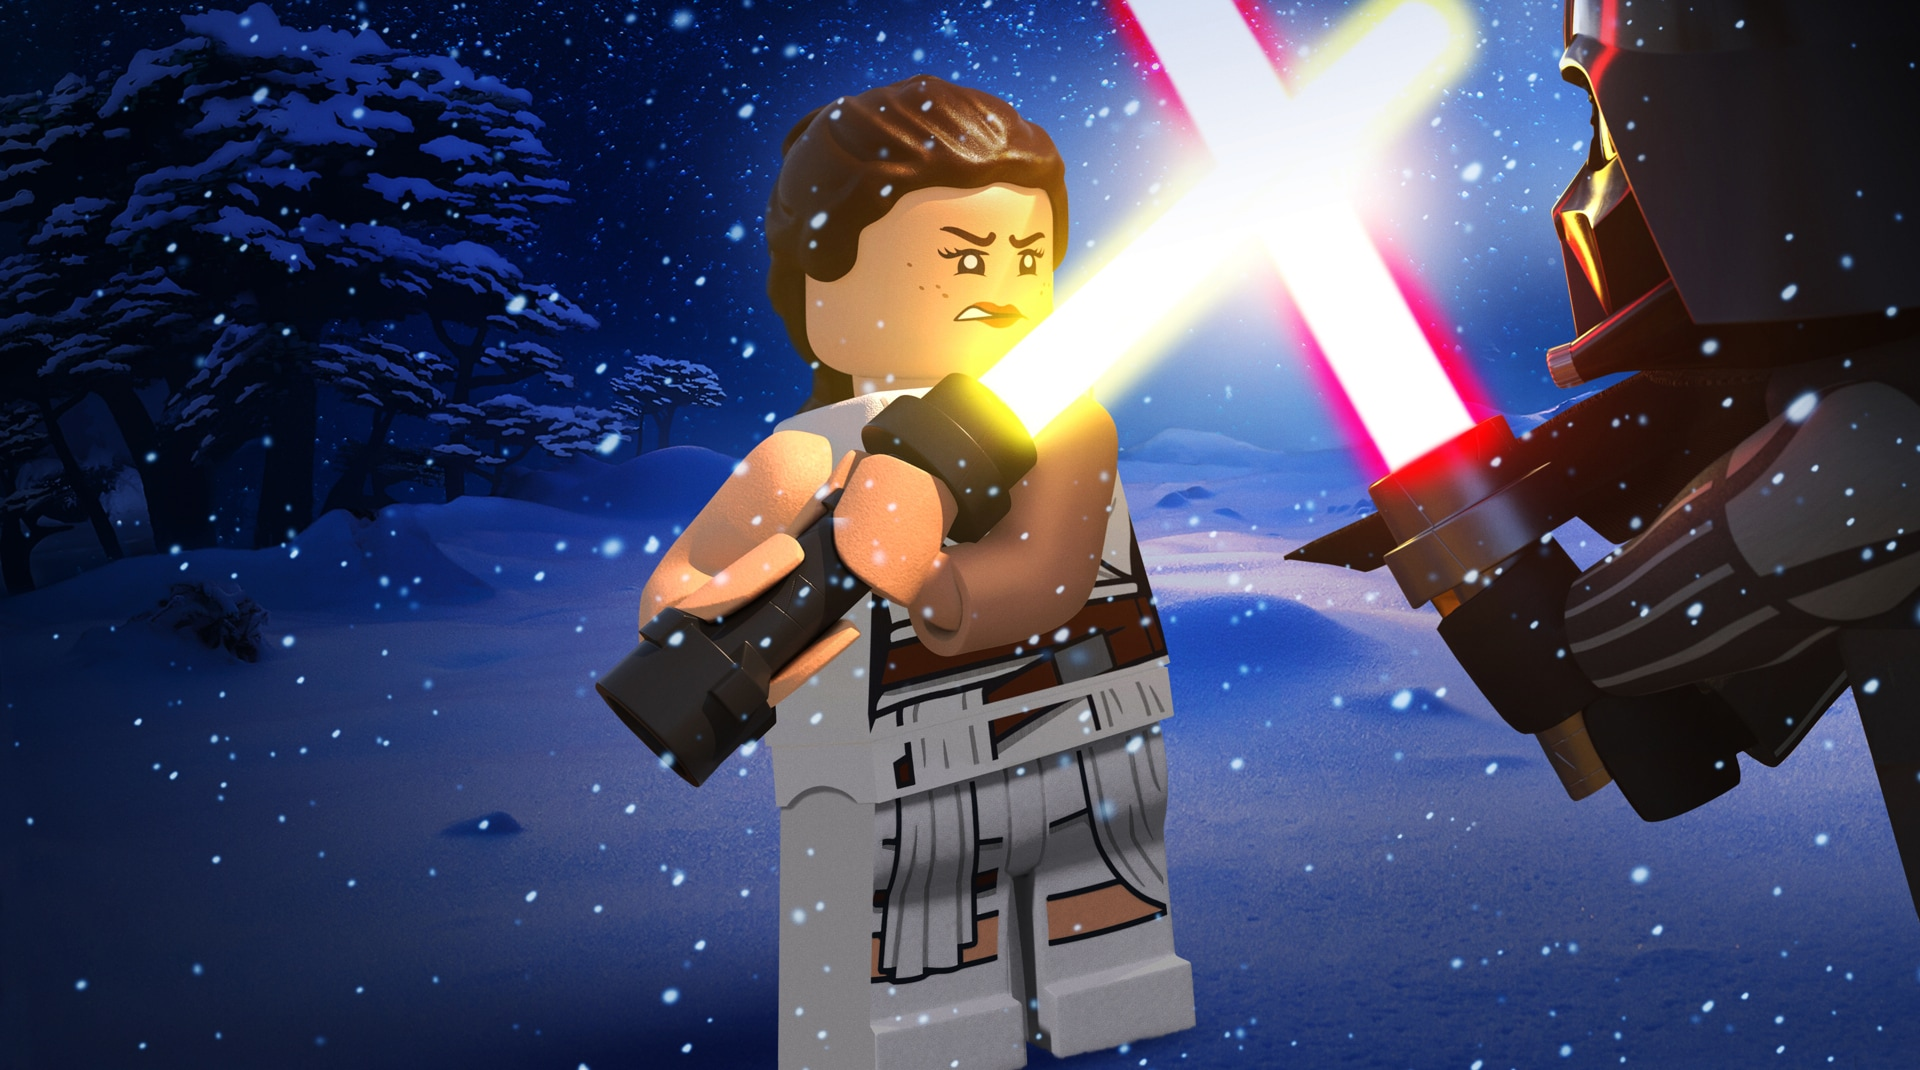 A still from Lego Star Wars Holiday Special